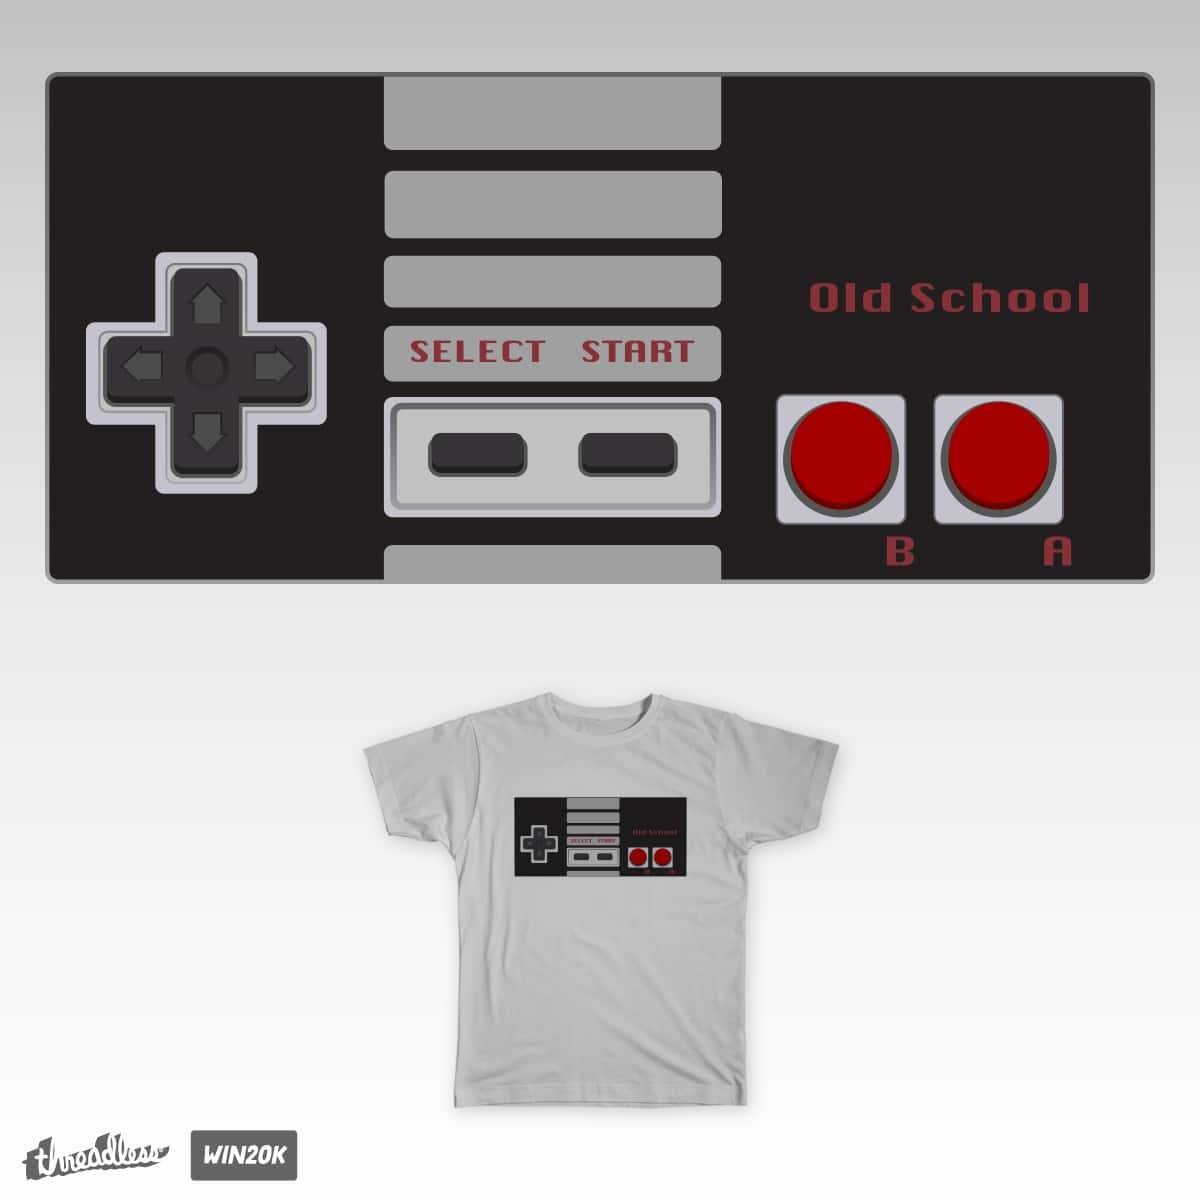 Old School by fuzzbug on Threadless